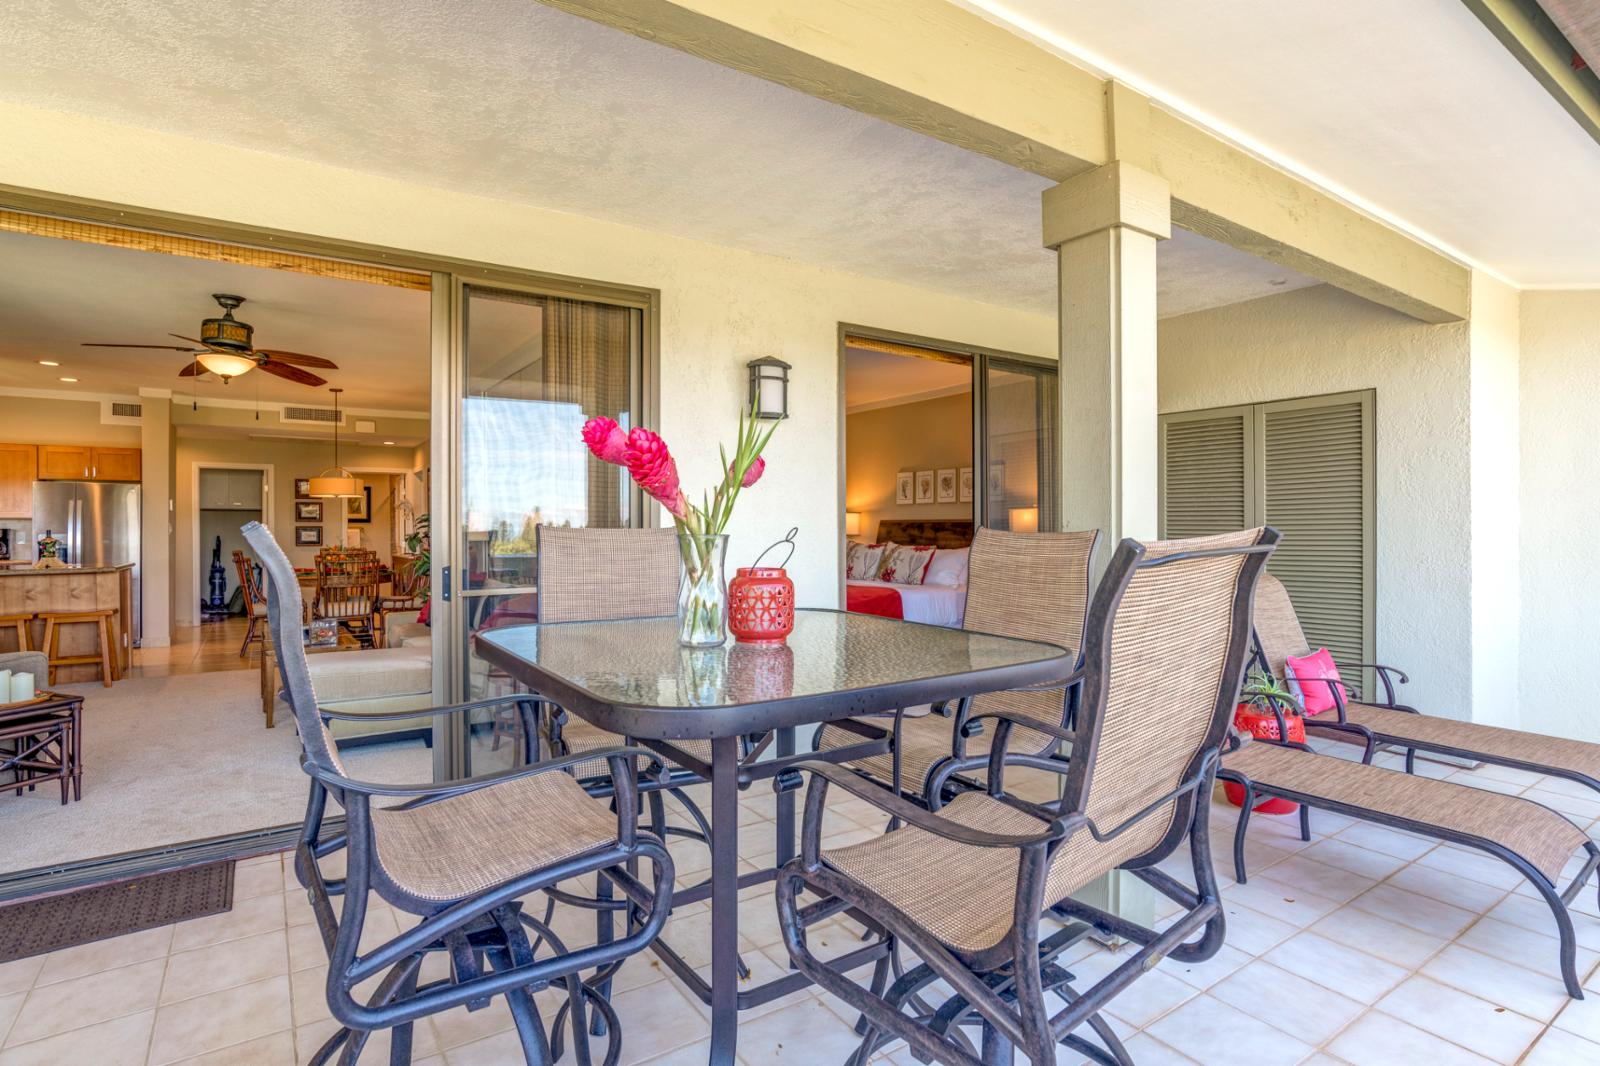 Luxury outdoor setting, chaise lounges, and oversized layout. Perfect for sunsets!